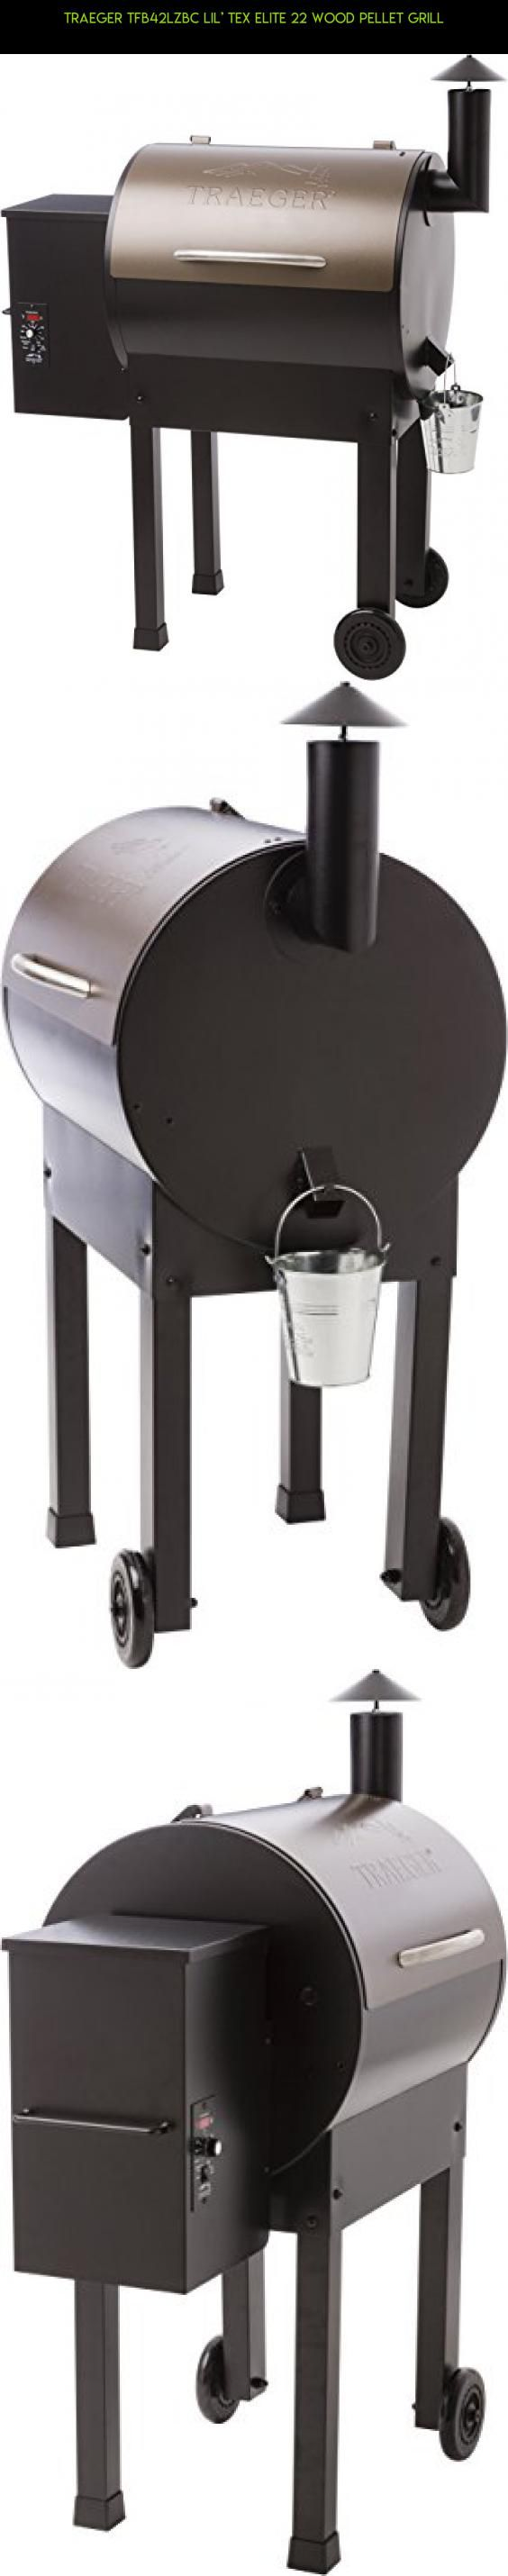 Traeger TFB42LZBC Lil' Tex Elite 22 Wood Pellet Grill #parts #shopping #technology #gadgets #plans #treager #drone #grills #fpv #products #tech #smokers #kit #camera #racing #and